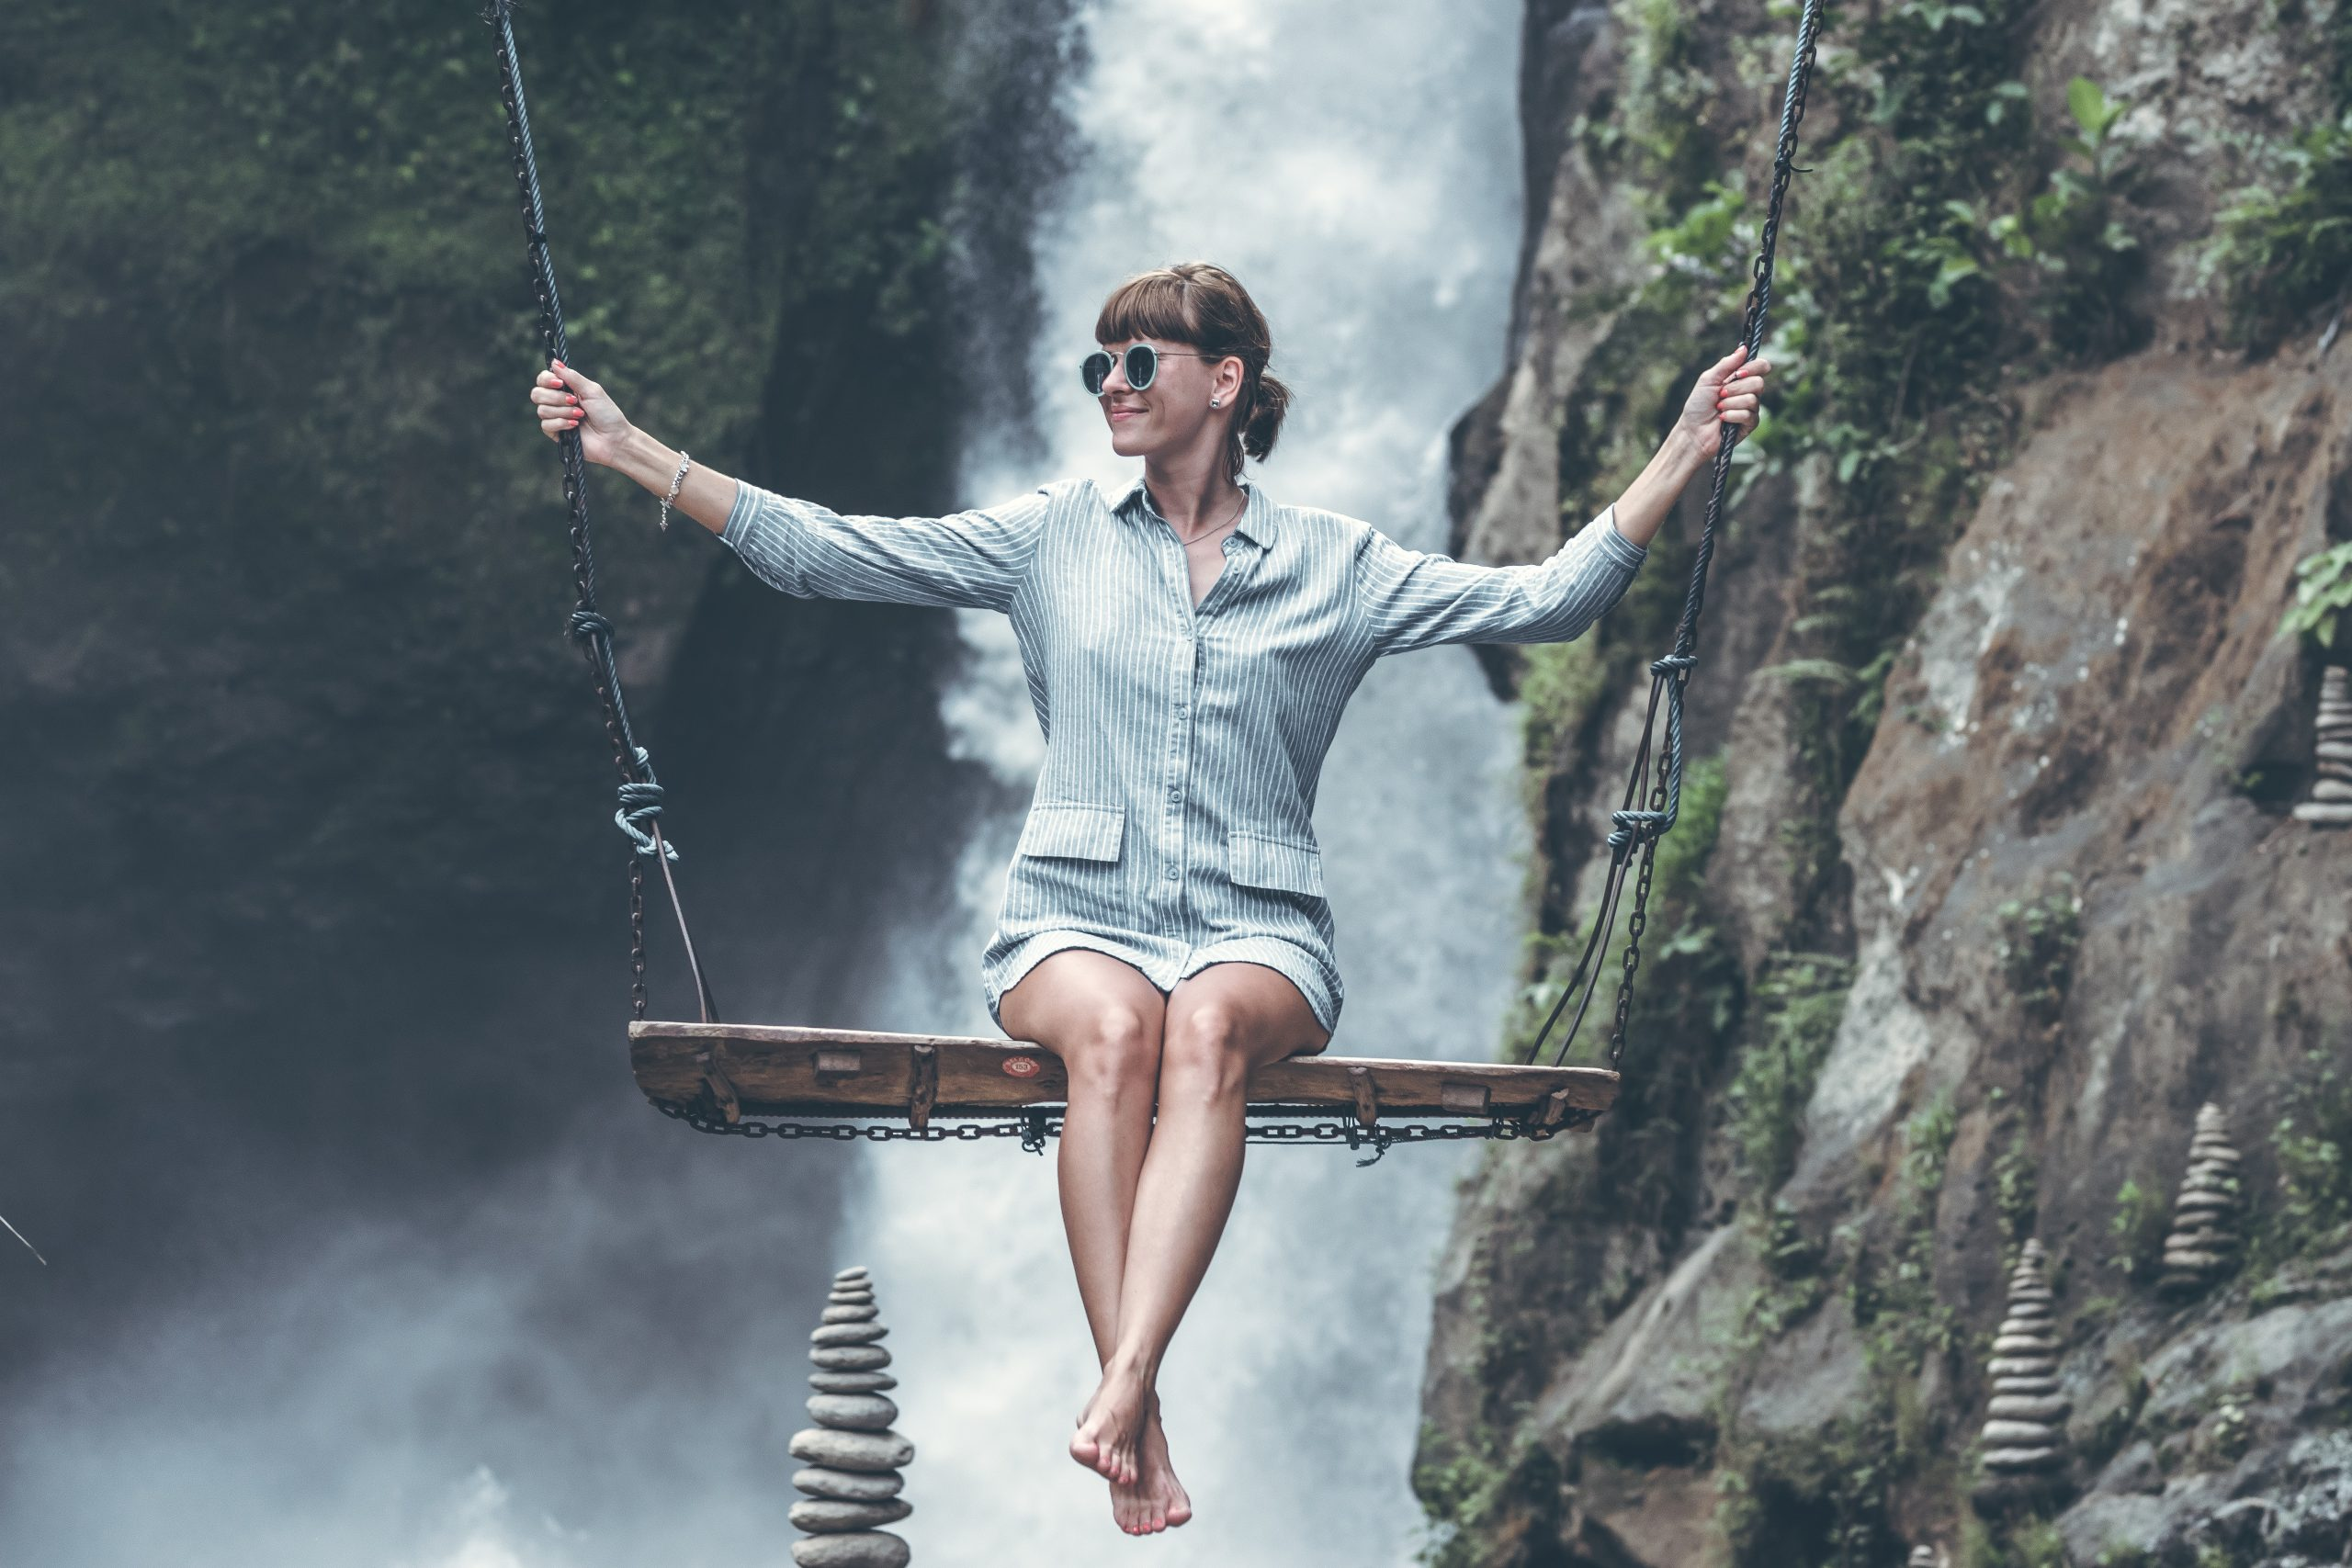 A woman balancing on a wooden swing.